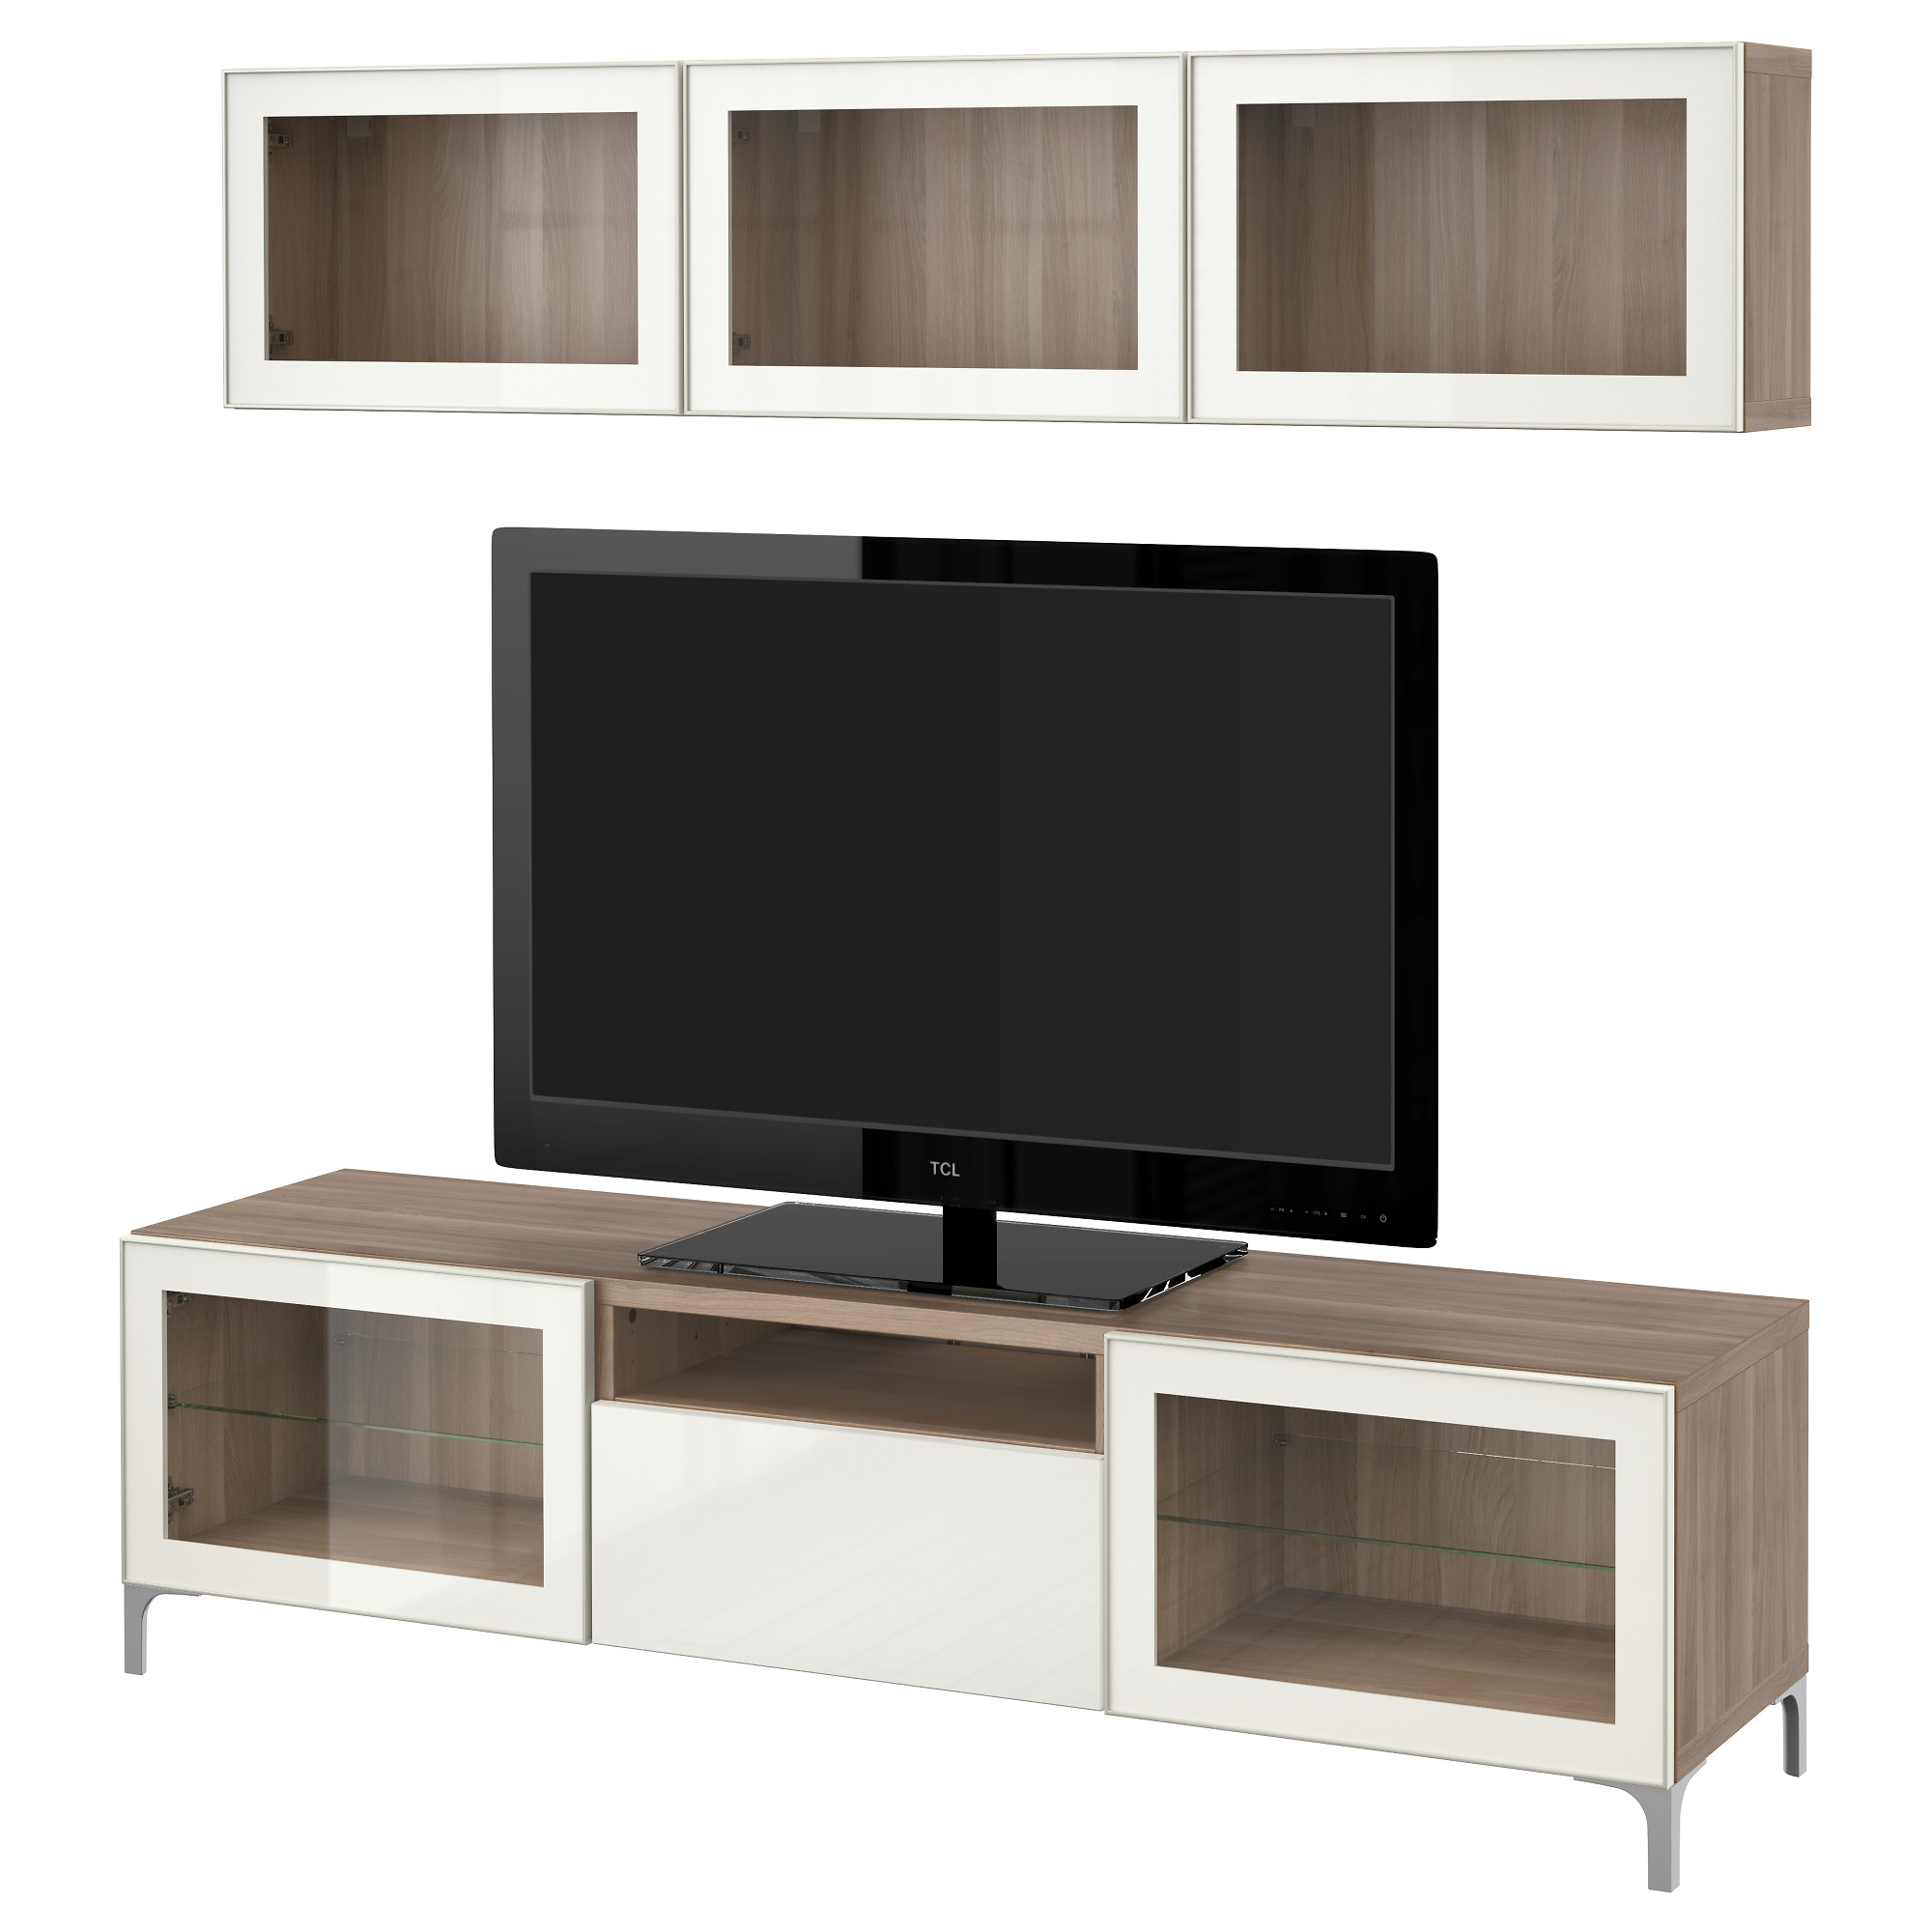 tv konsole ikea interessante ideen f r die. Black Bedroom Furniture Sets. Home Design Ideas